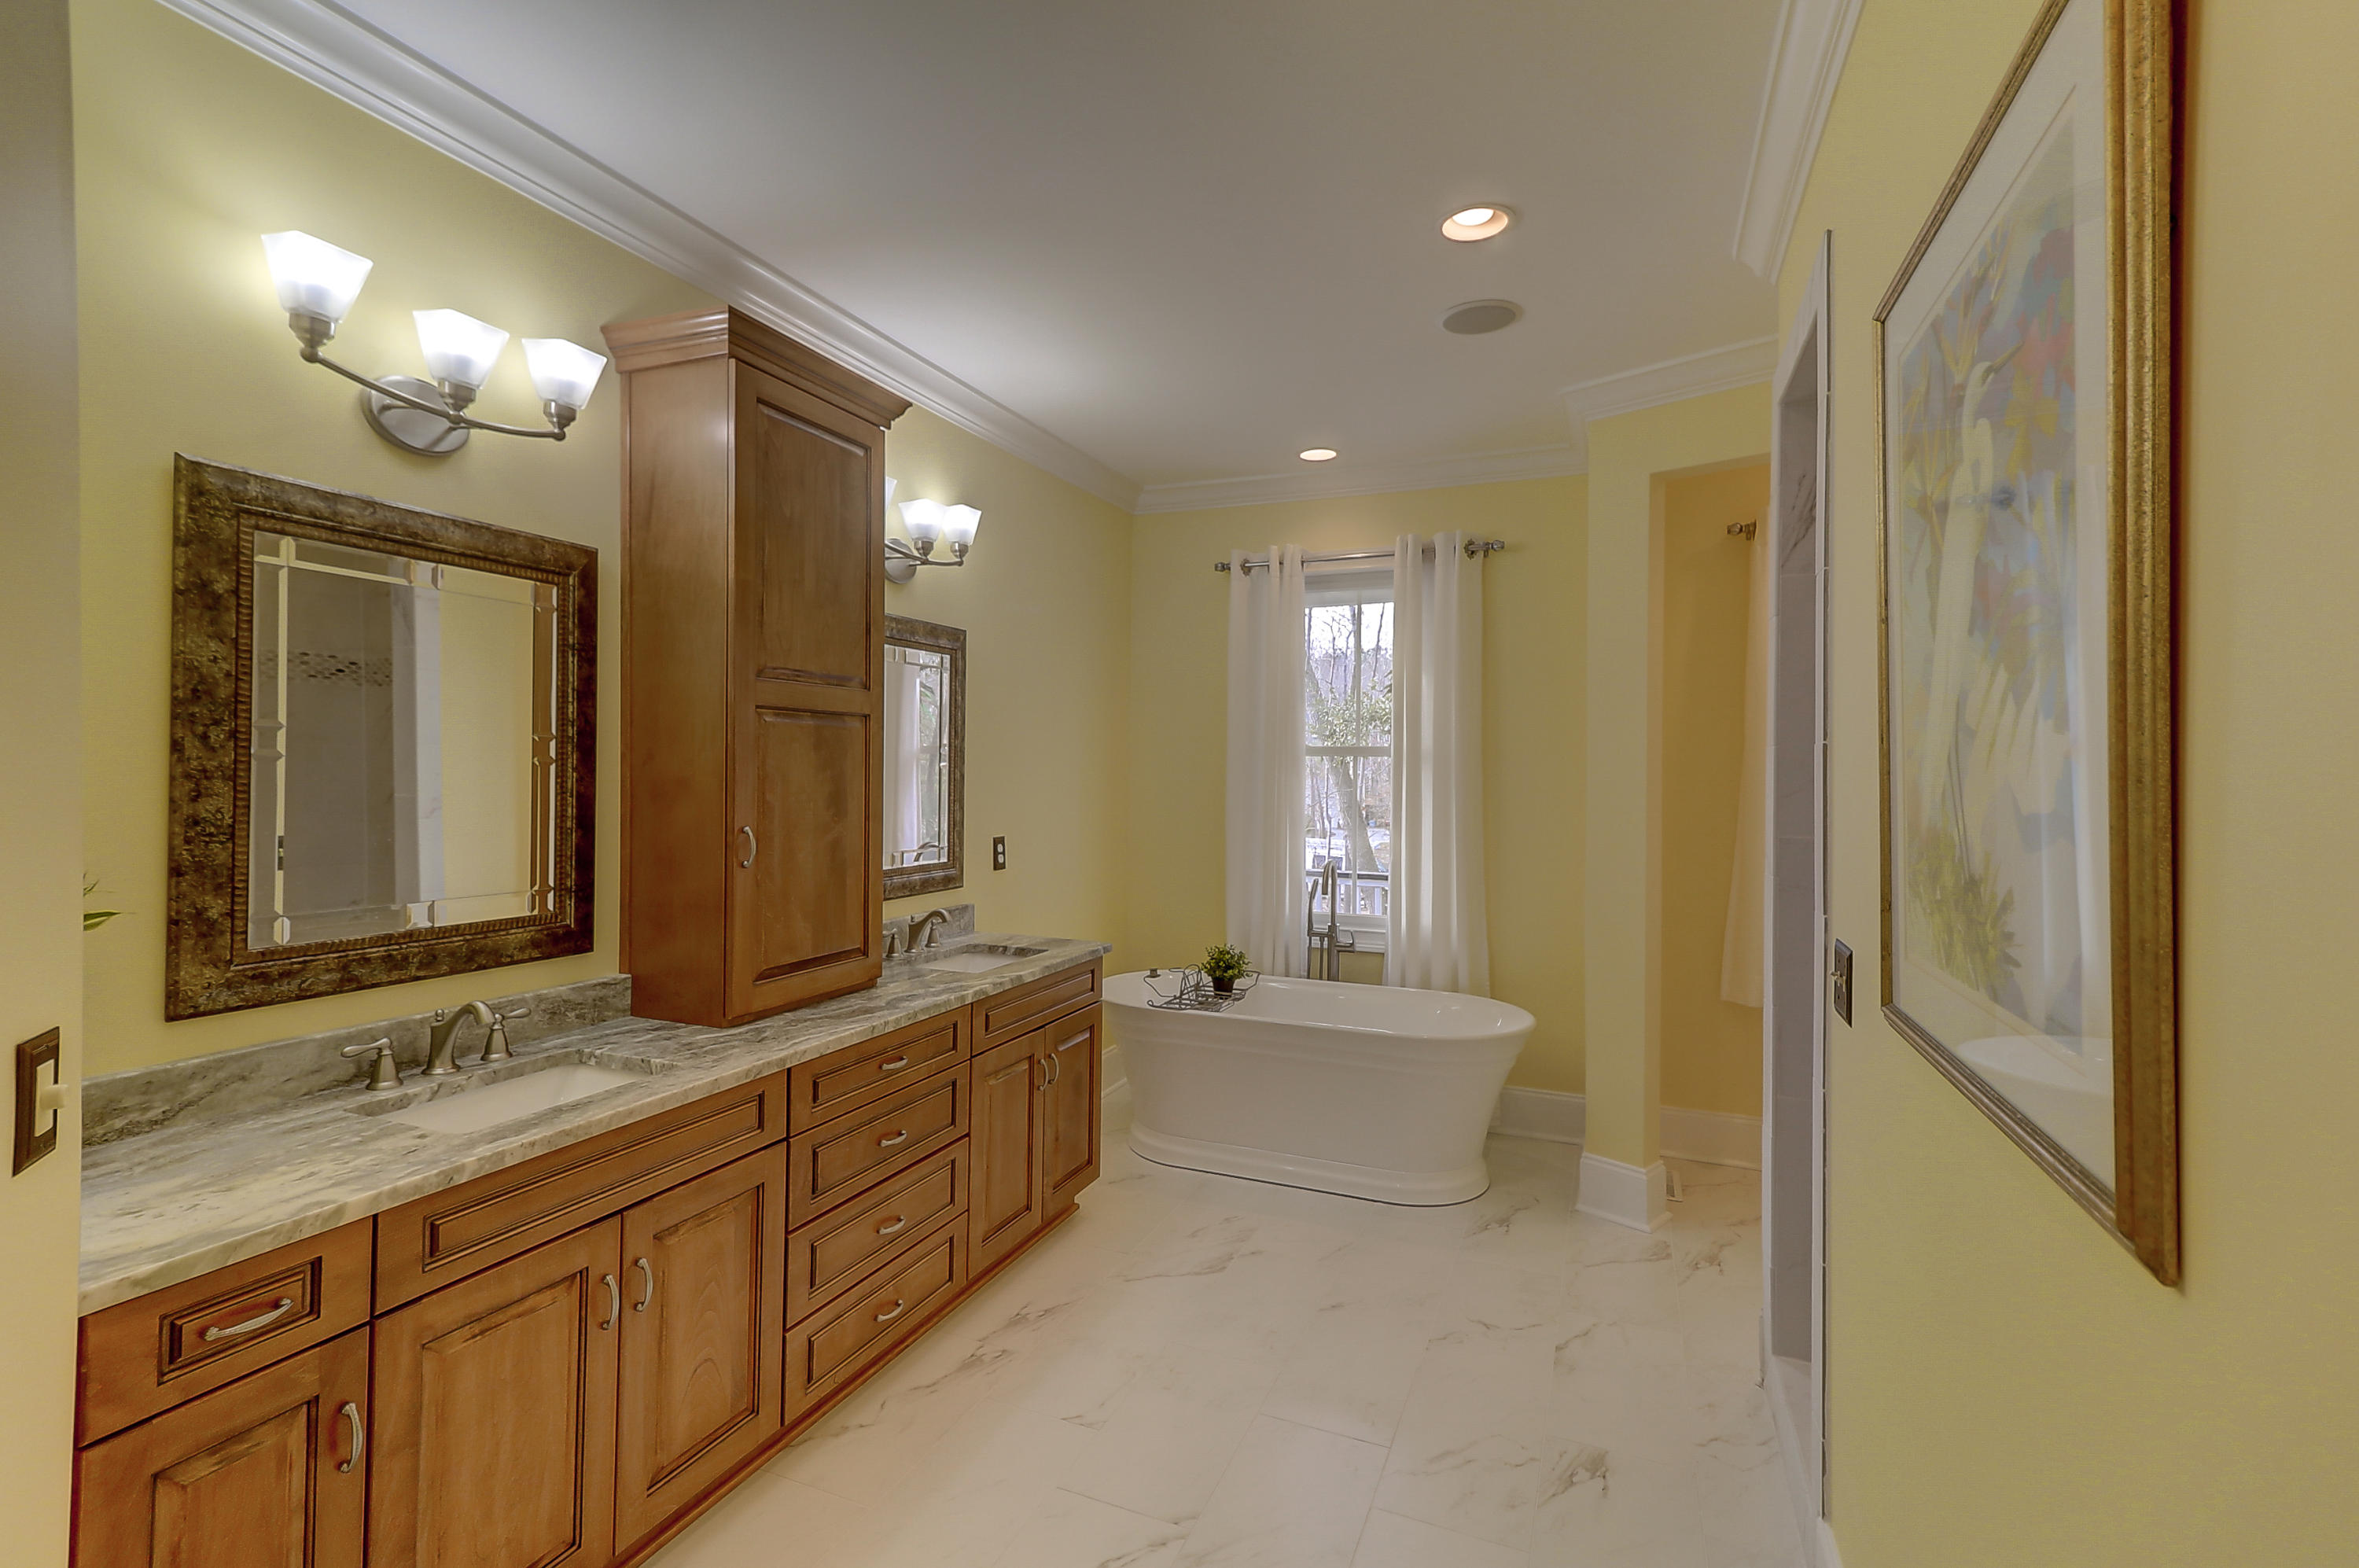 Dunes West Homes For Sale - 1764 Greenspoint, Mount Pleasant, SC - 23